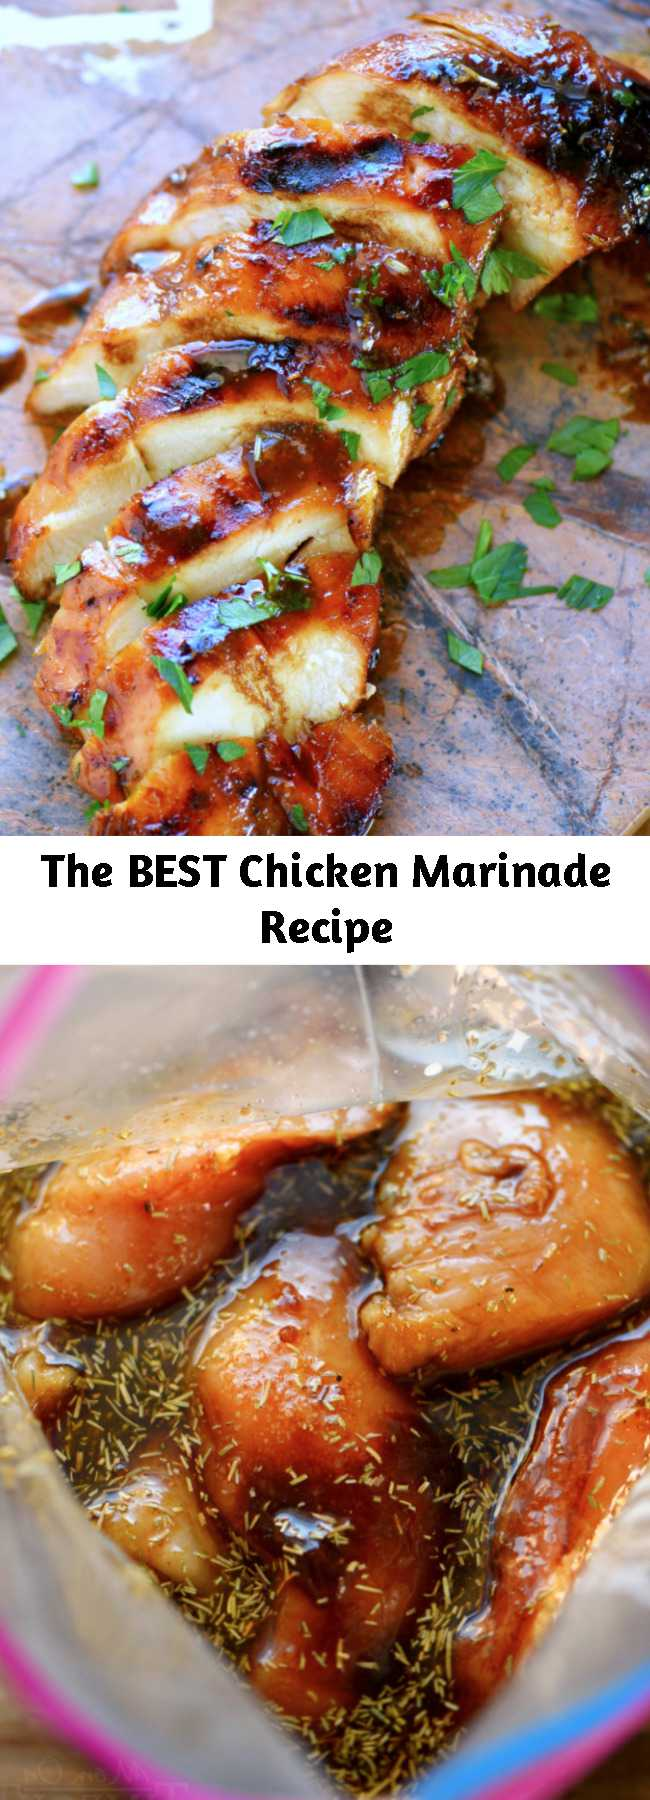 The BEST Chicken Marinade Recipe - Look no further for the Best Chicken Marinade recipe ever! This easy chicken marinade recipe is going to quickly become your favorite go-to marinade! This marinade produces so much flavor and keeps the chicken incredibly moist and outrageously delicious - try it today!